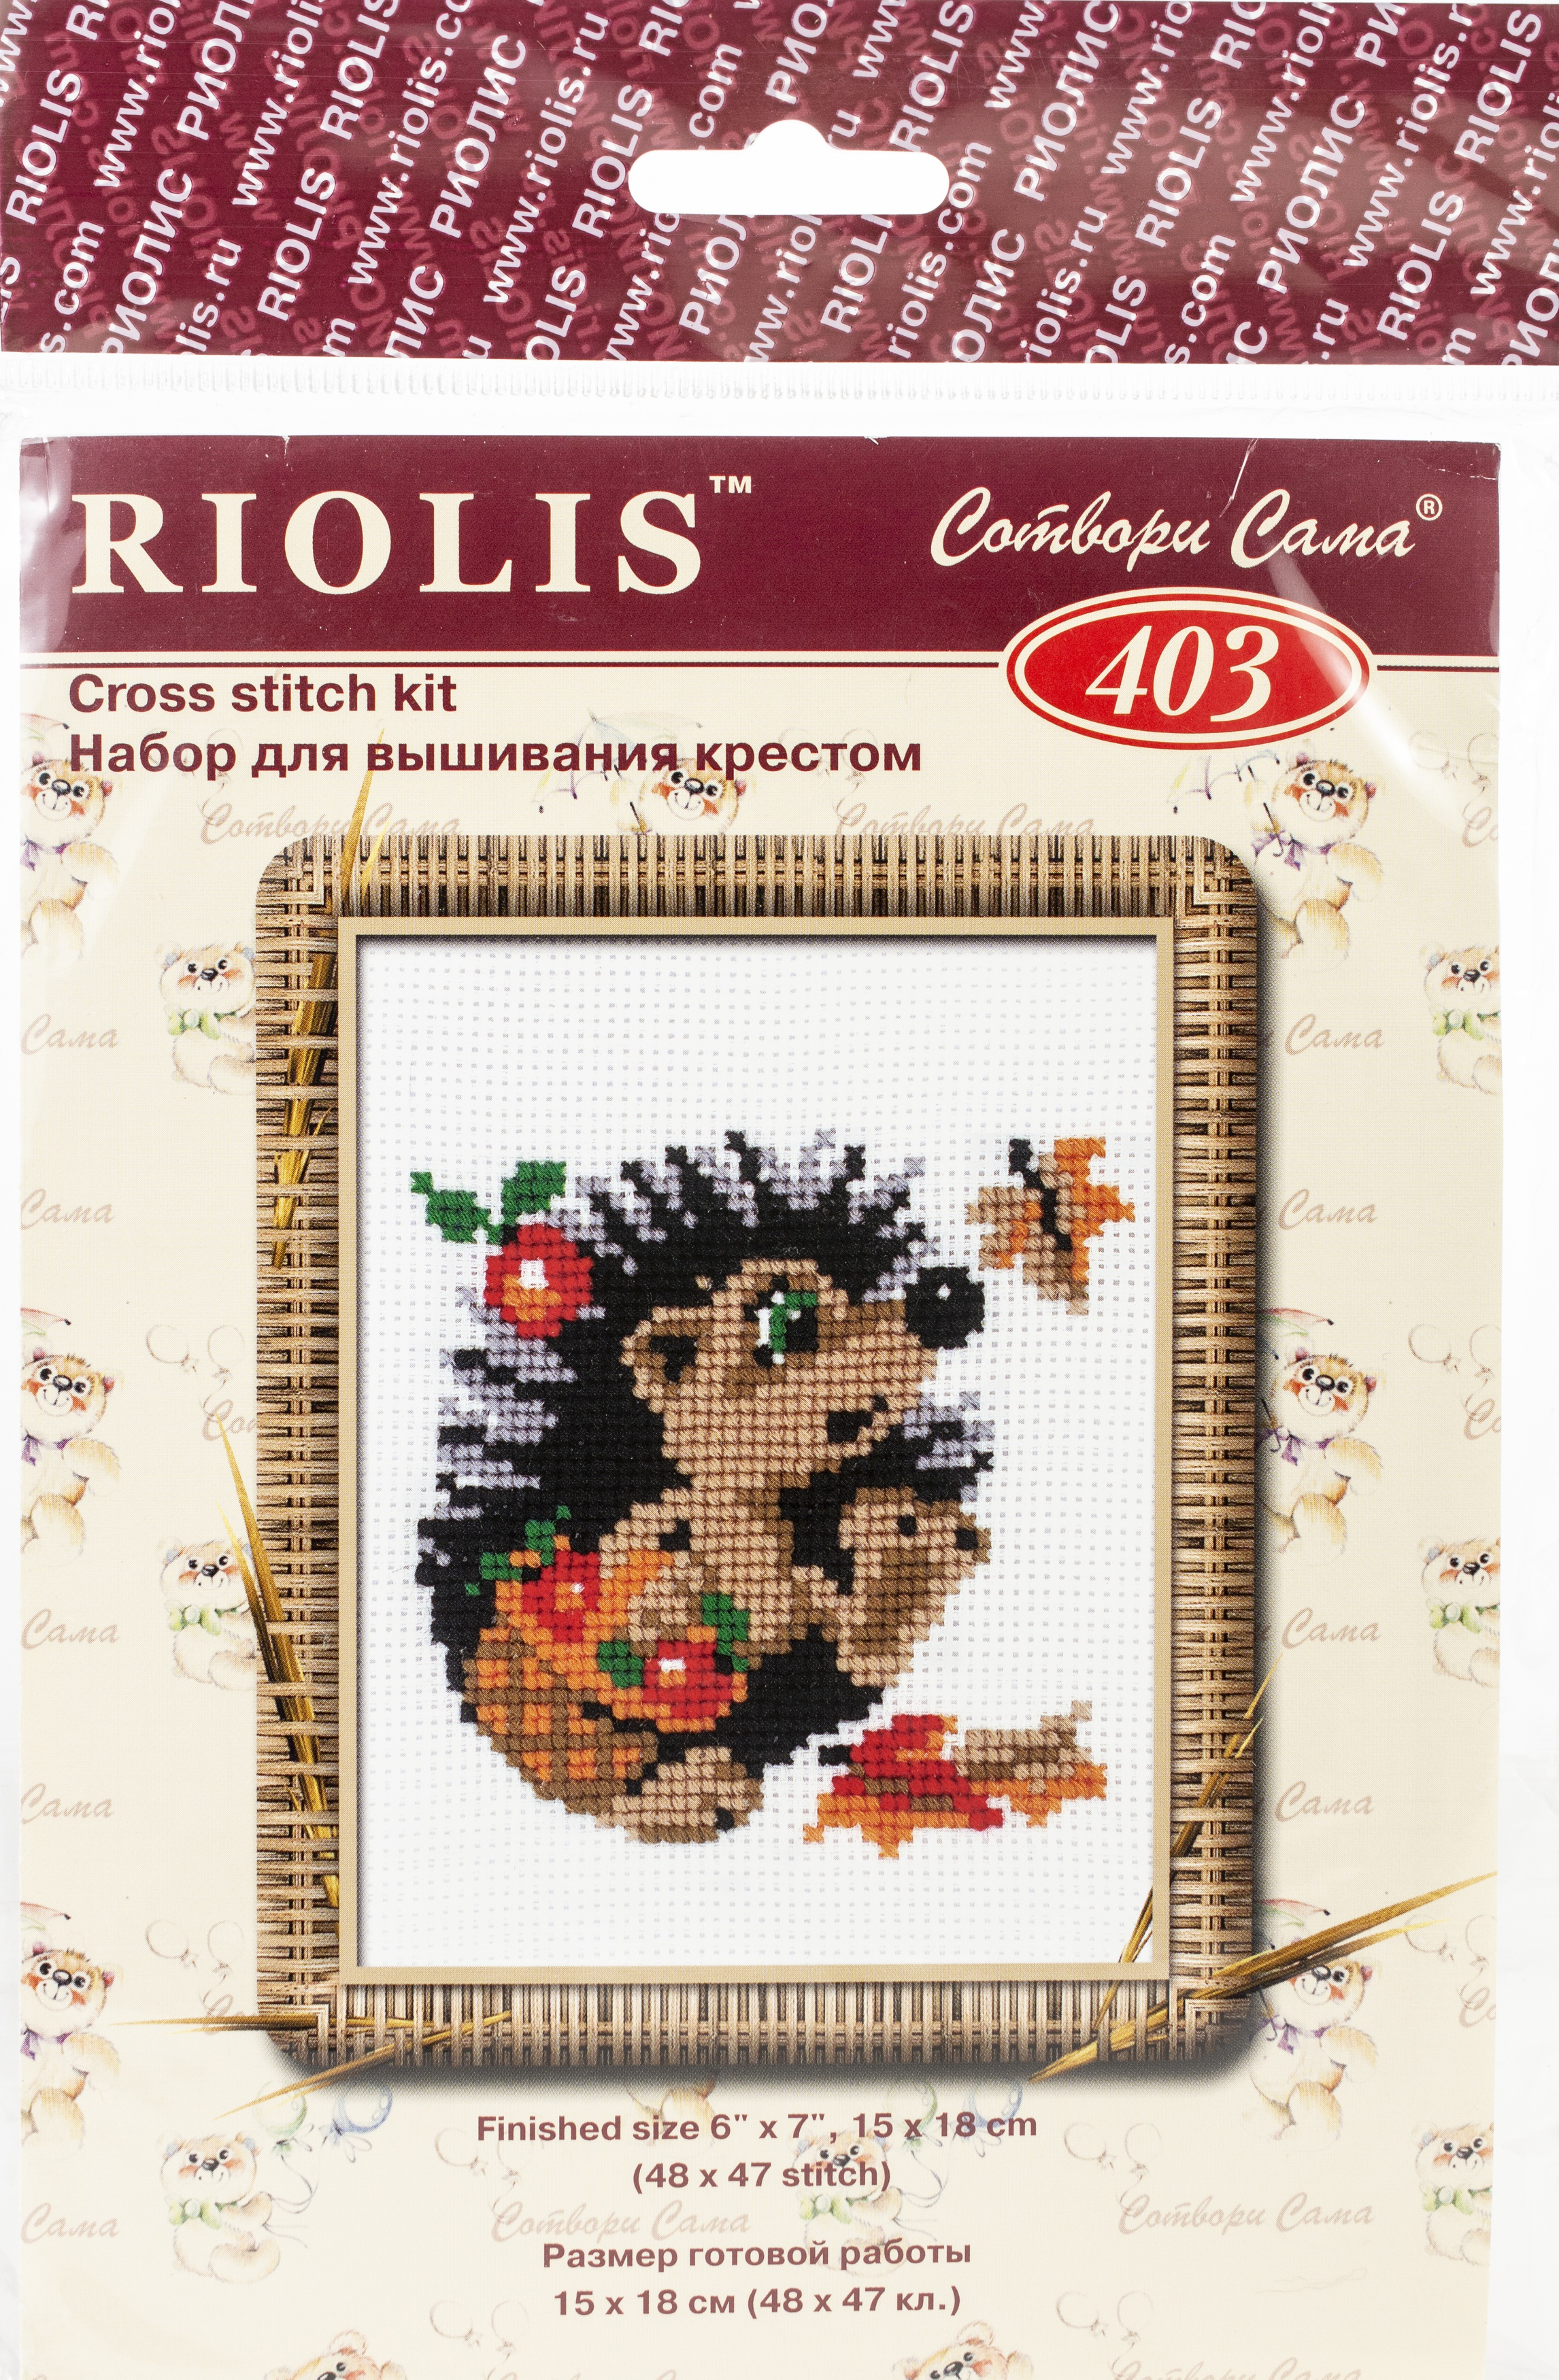 RIOLIS Counted Cross Stitch Kit 5.9X7.09-Hedgehog In Basket (10 Count)